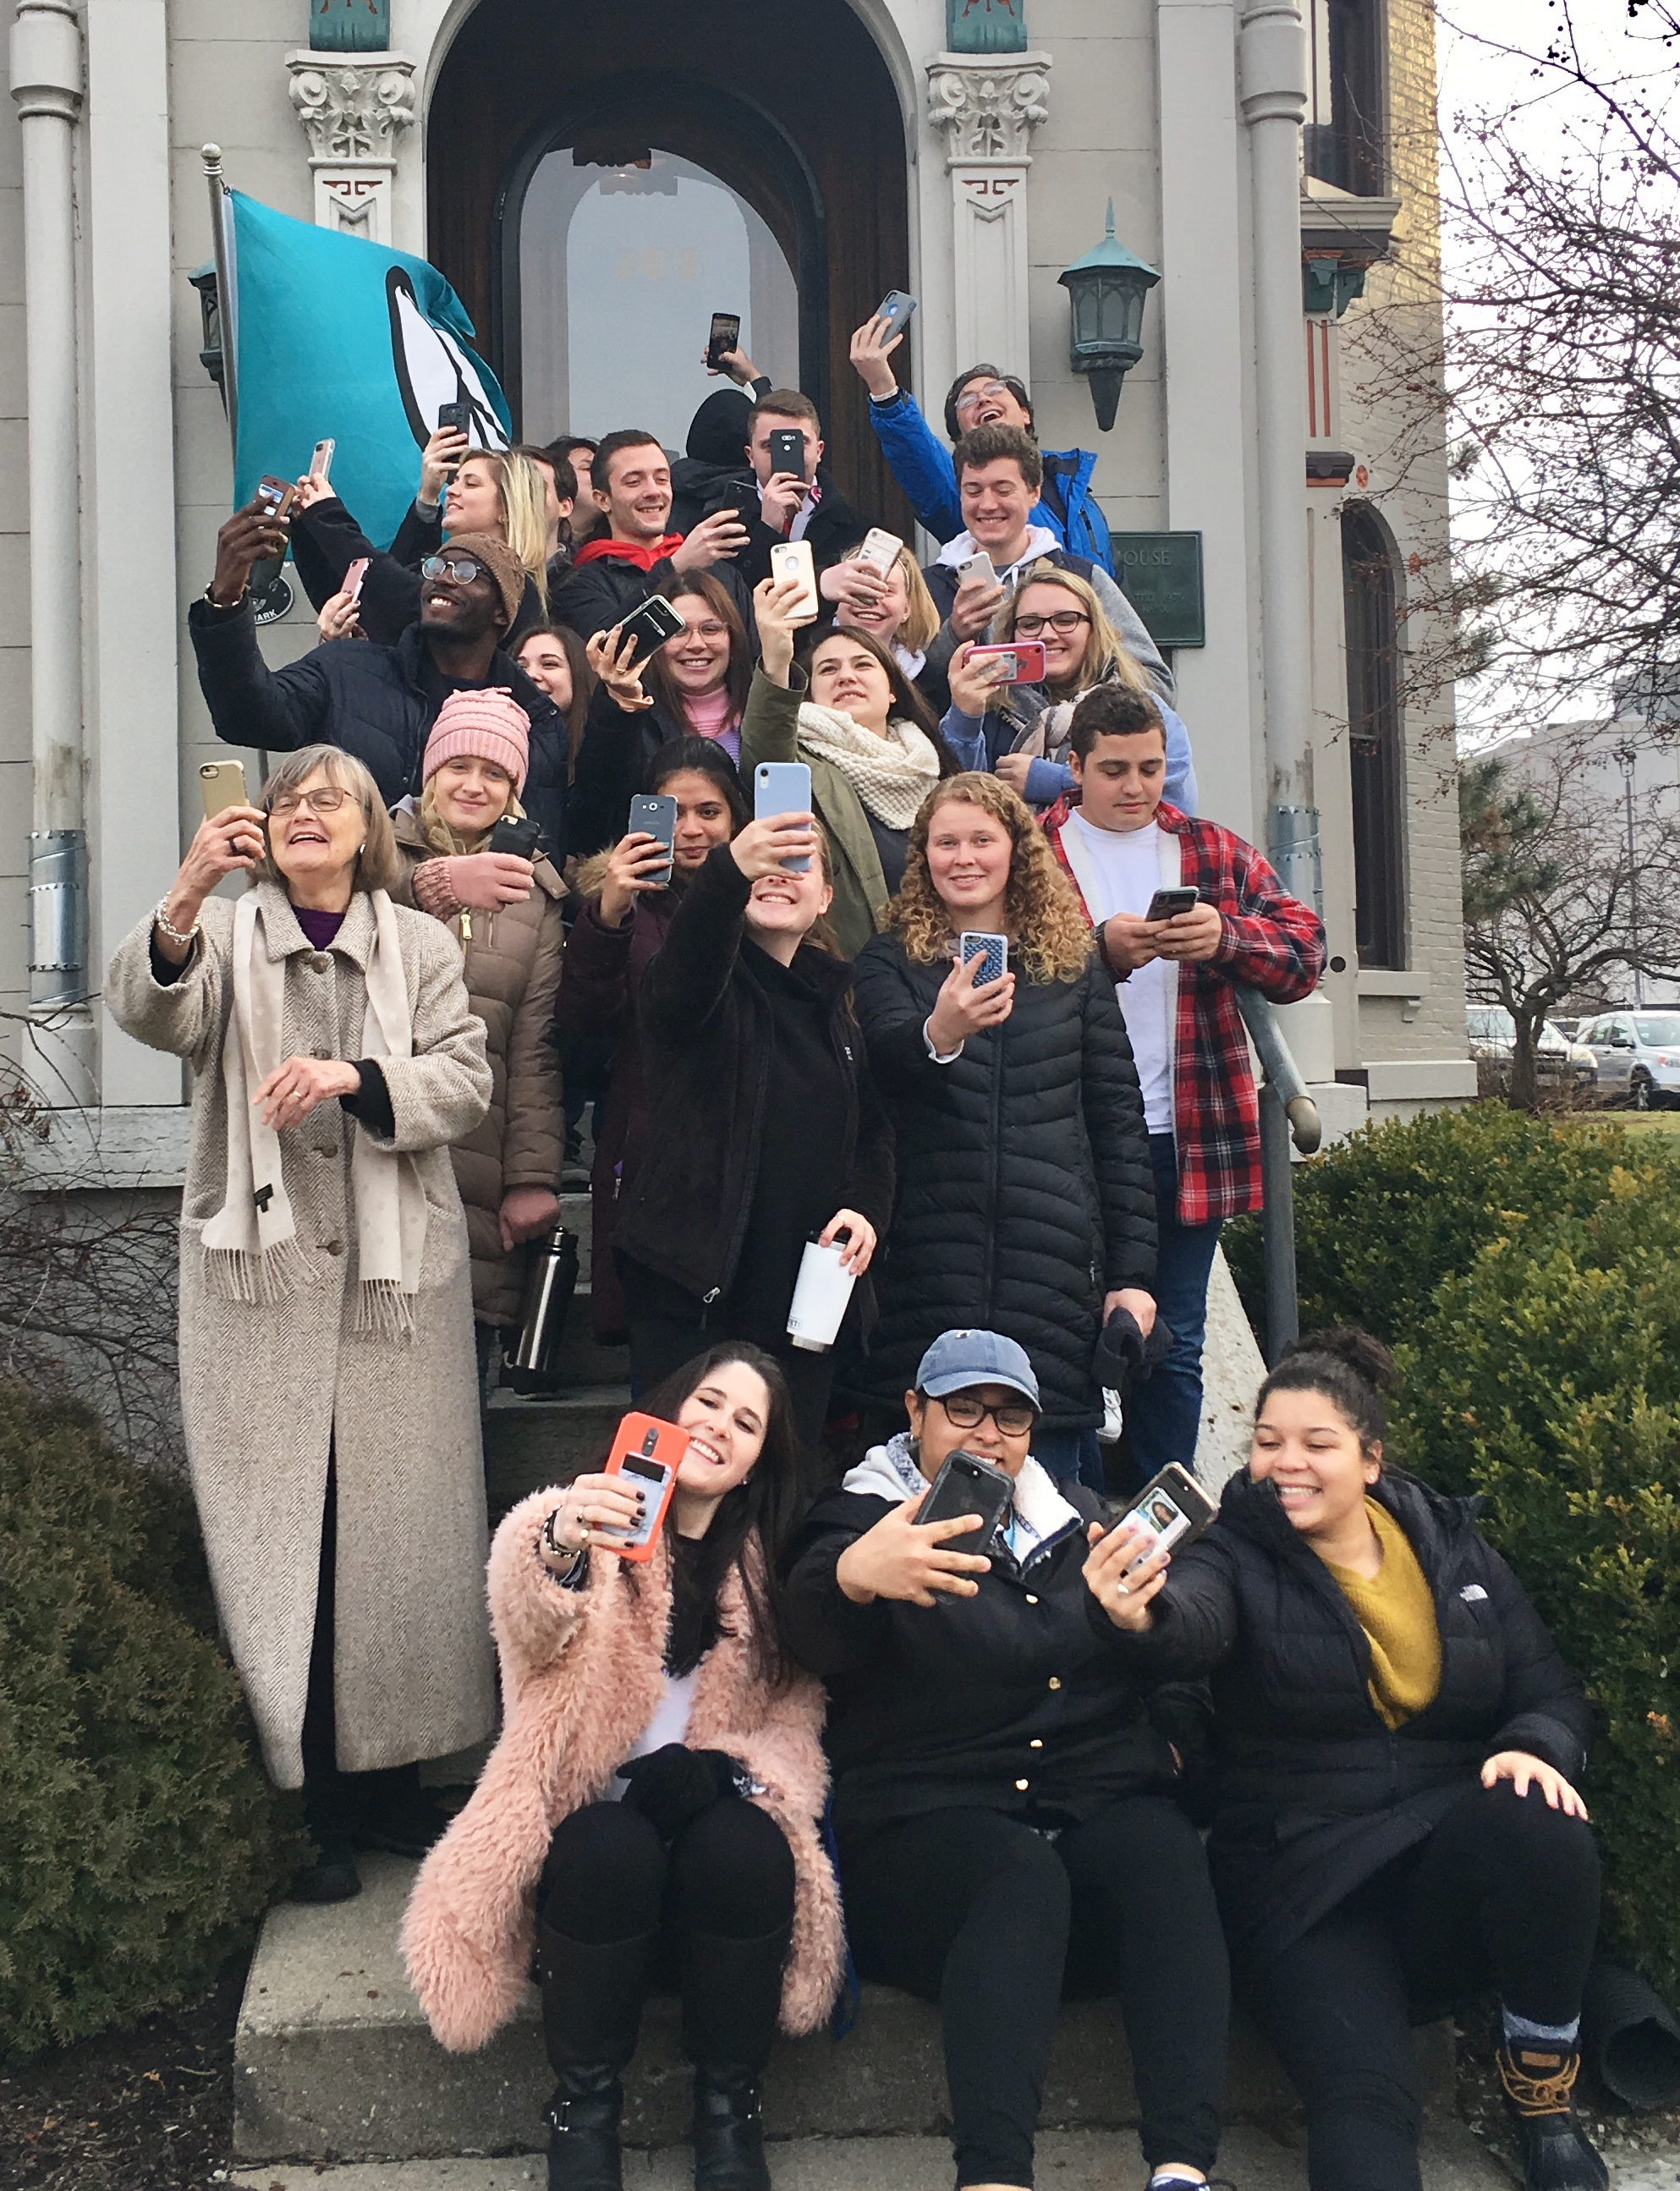 """University of Dayton students toured the museum in January and took photos for the annual """"Museum Selfie Day"""" event celebrated by museums worldwide."""